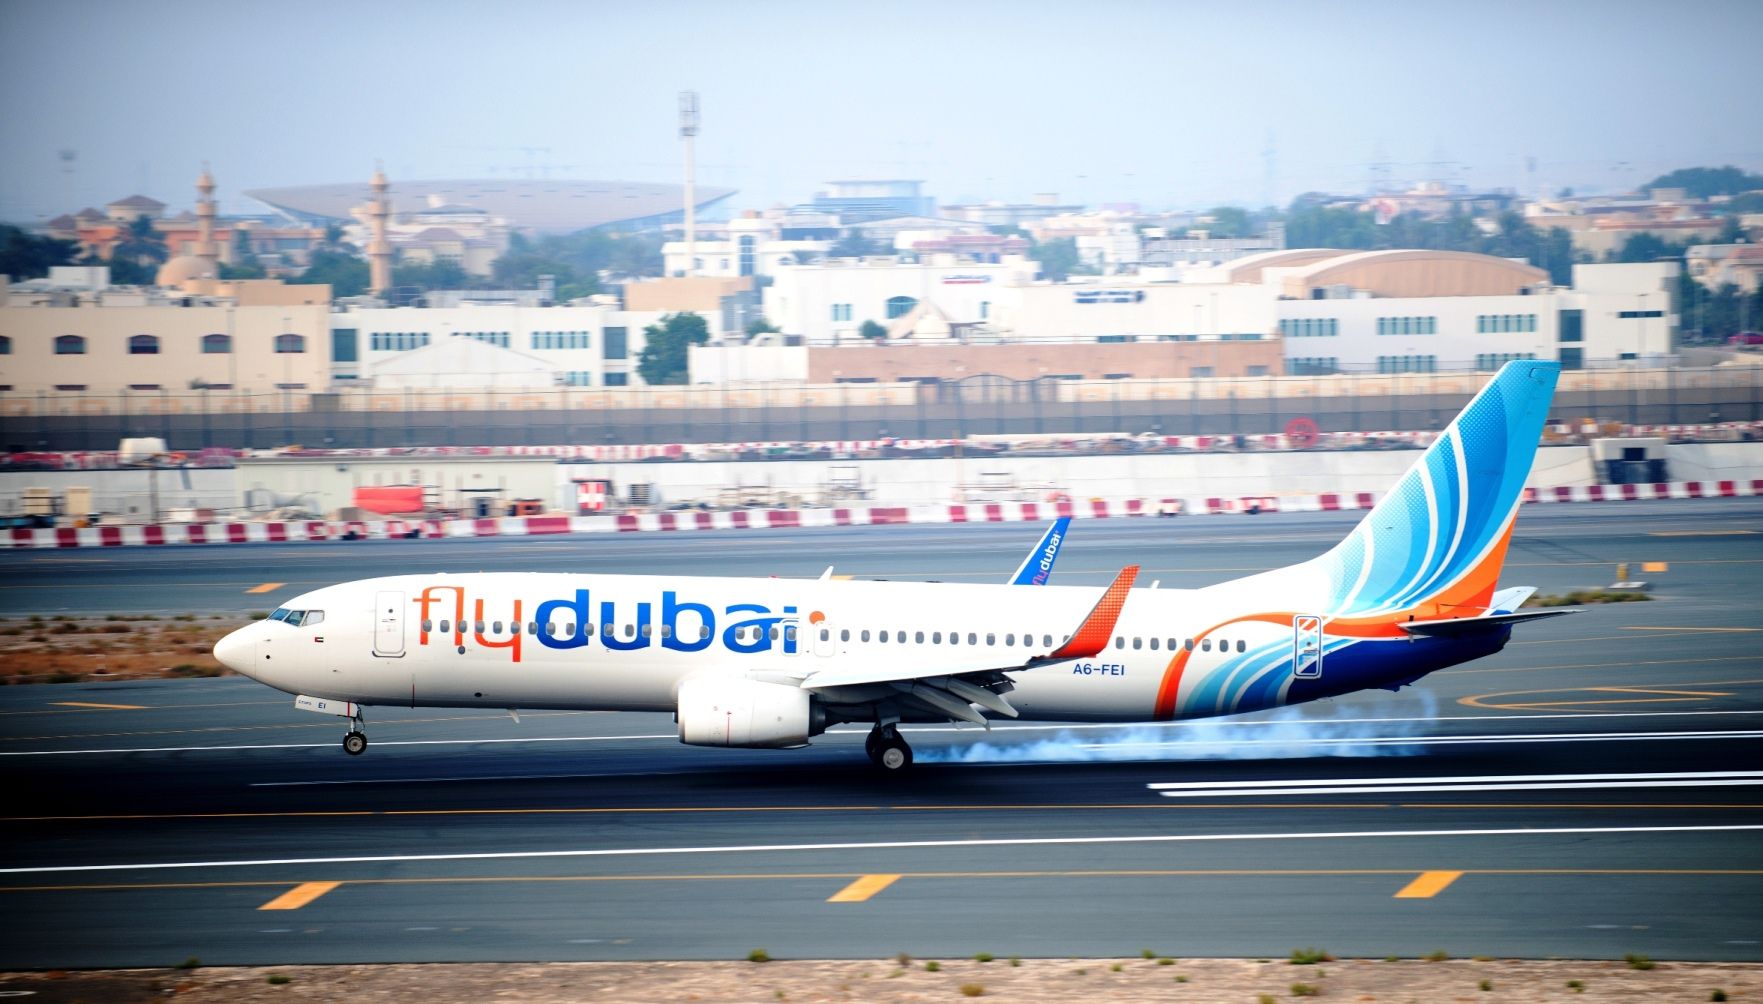 SECURITY INCIDENT: Was There An Attempted Hijacking On a flydubai Plane Today? The UAE Say's No